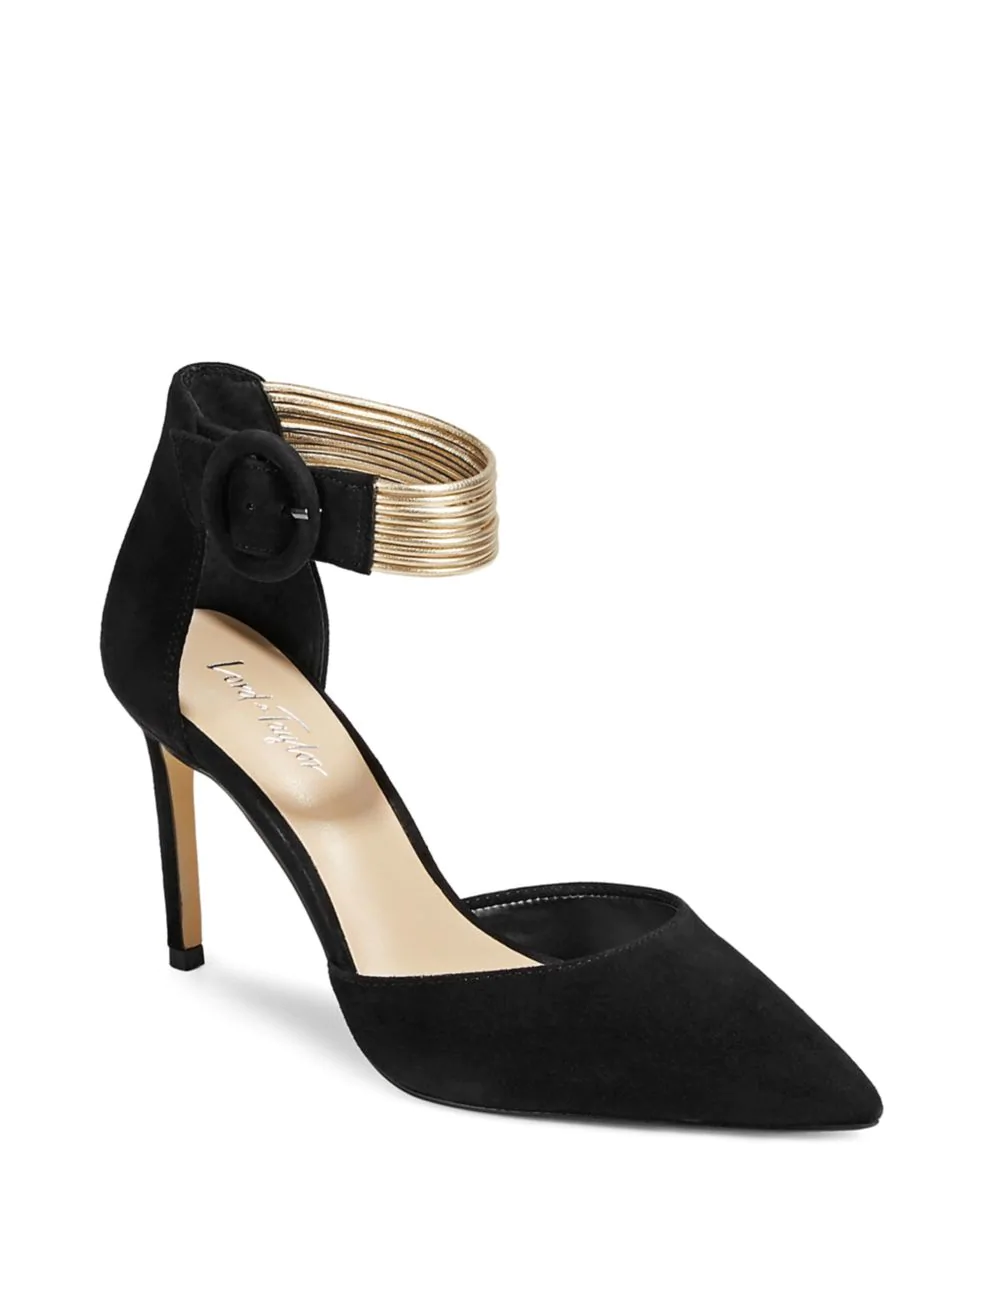 LORD & TAYLOR. Pointed-Toe Suede Ankle-Strap Pumps.